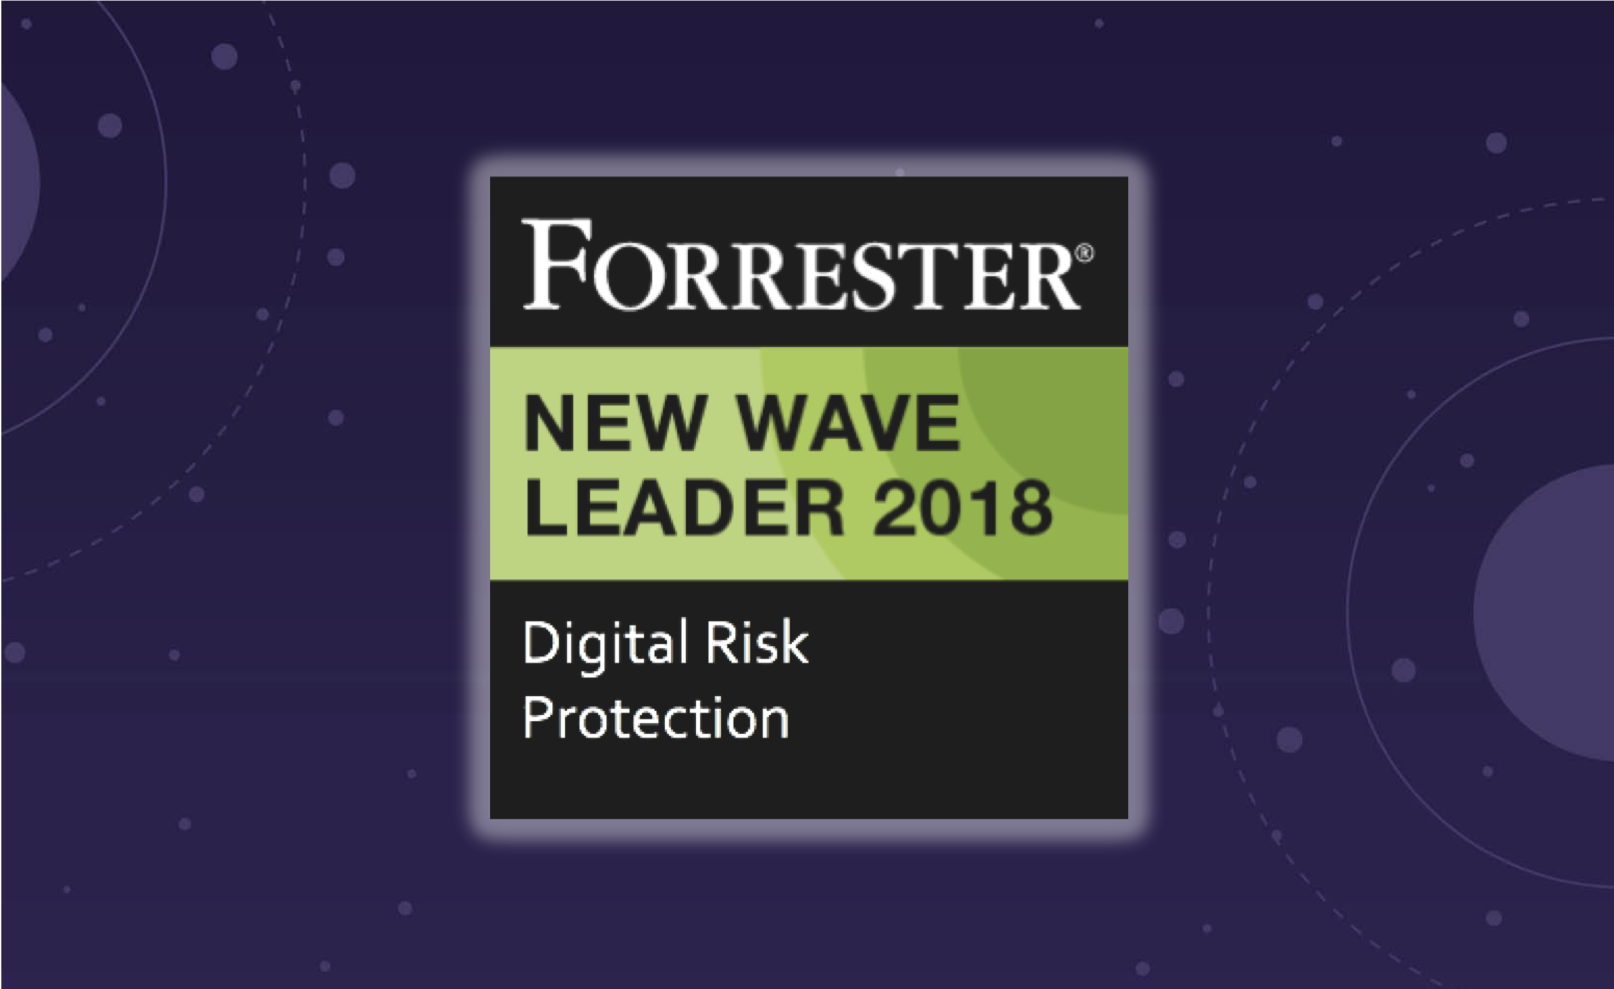 homepage-bottom-section-forrester-2